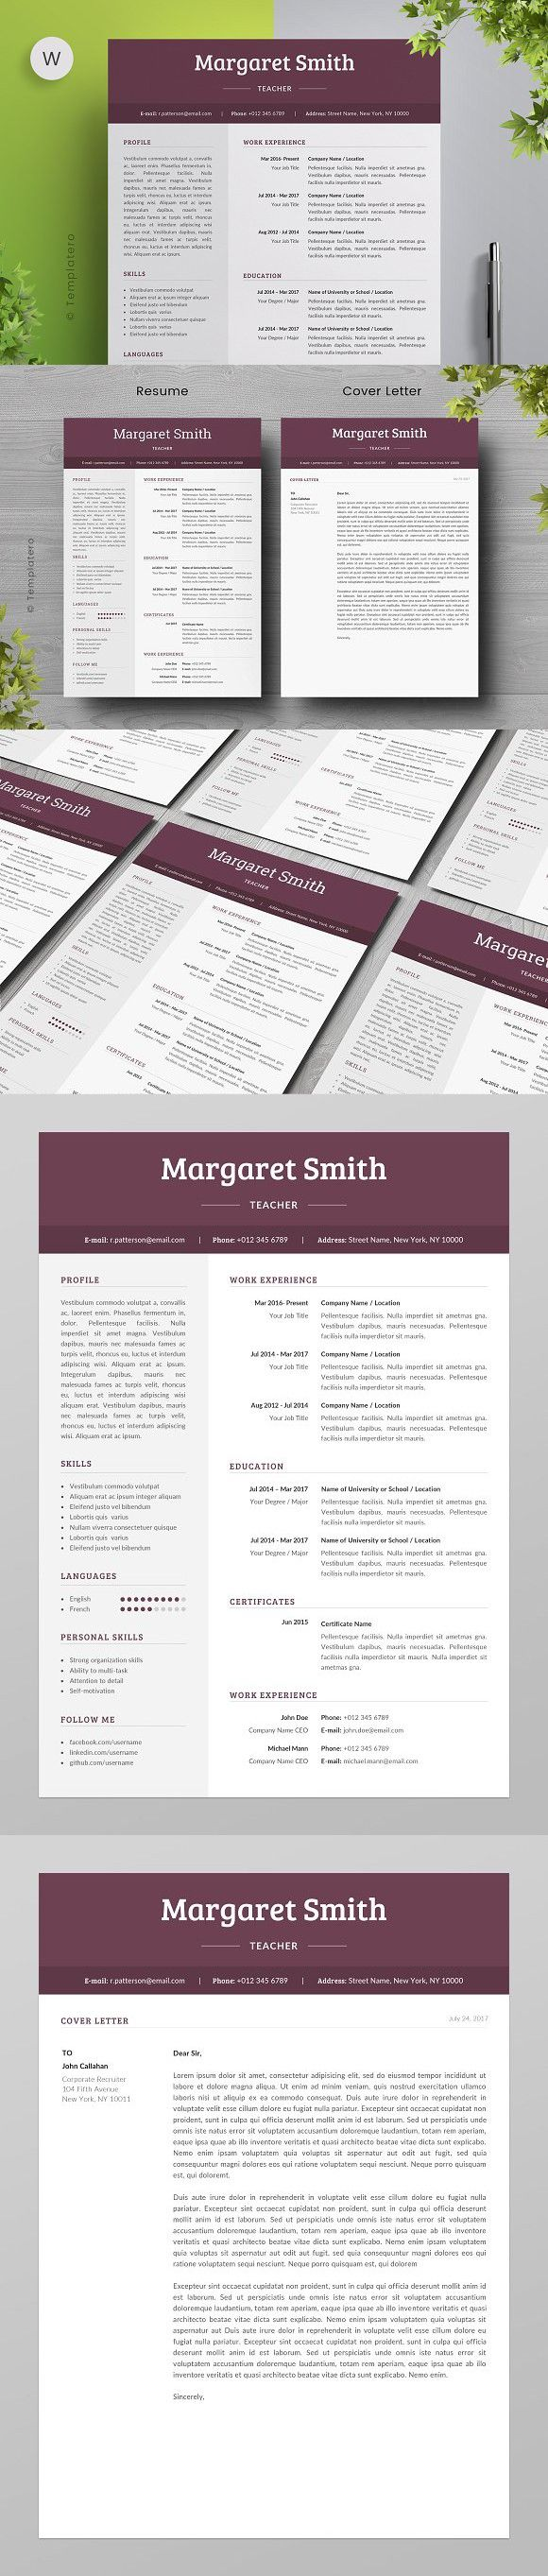 operations supervisor resume%0A Resume Template   Free Cover Letter  Resume Templates